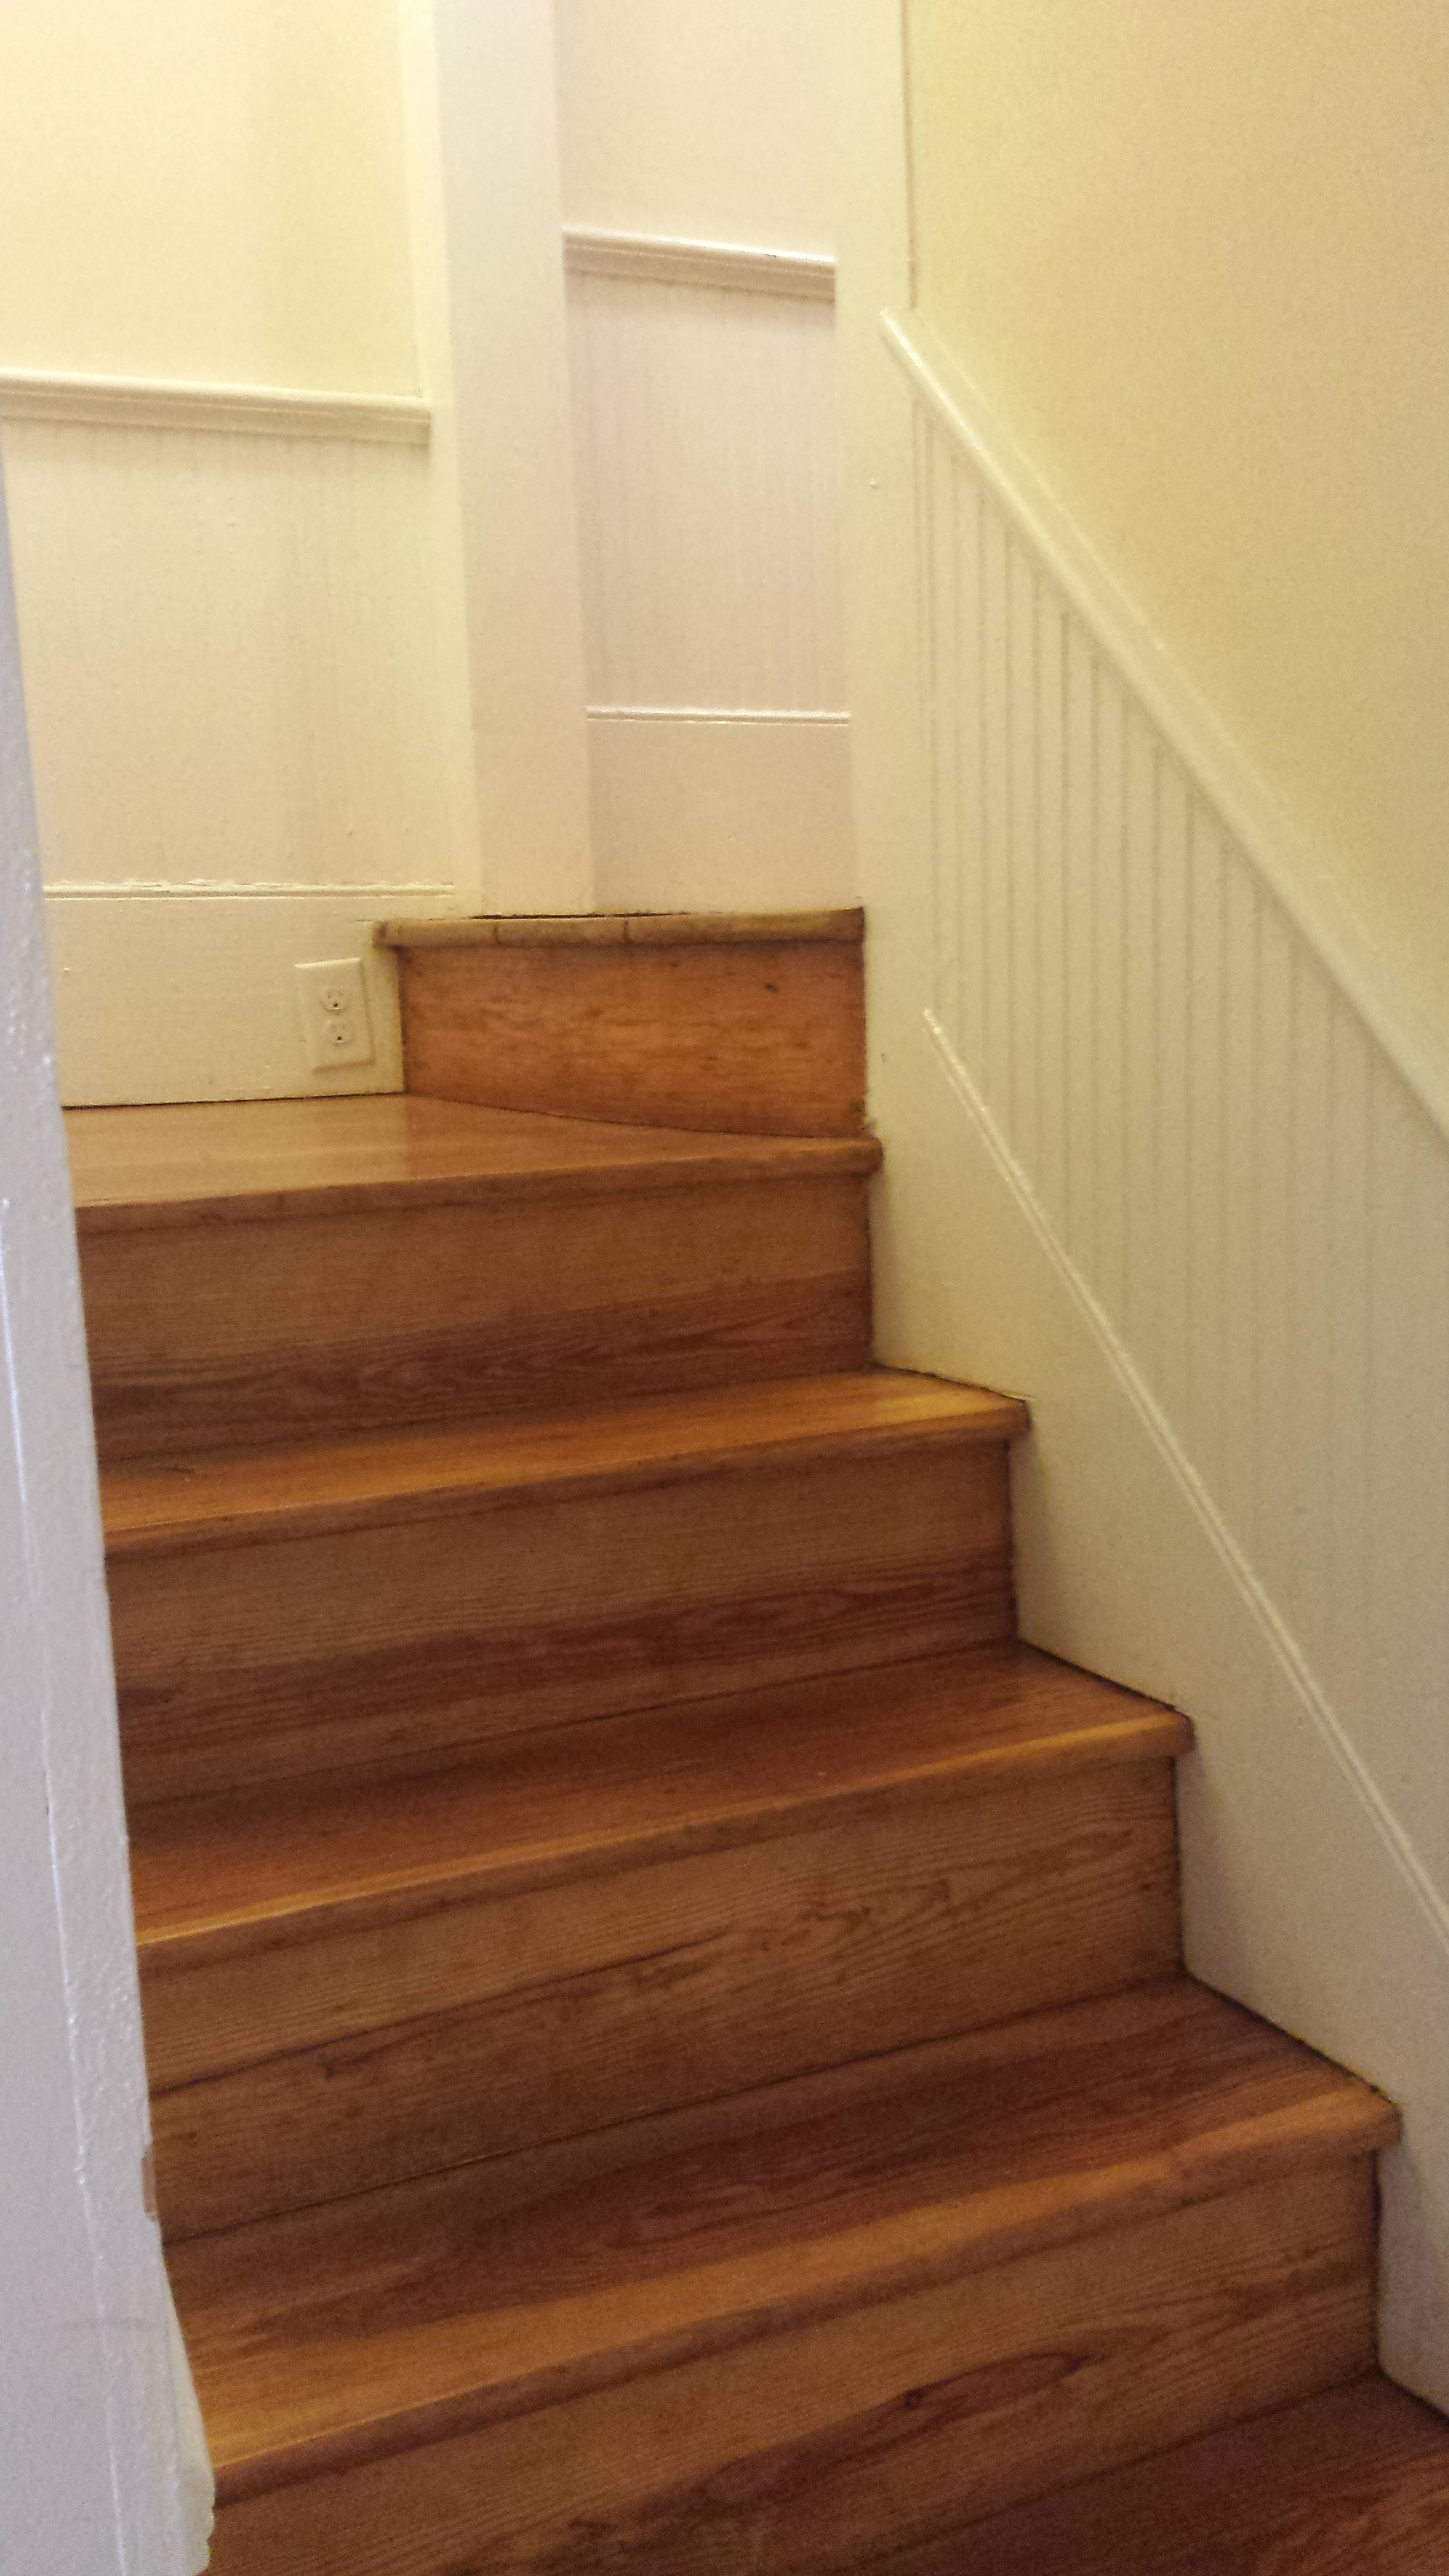 Best Servant Stairs Meet The Main Staircase In This 1905 Home 400 x 300